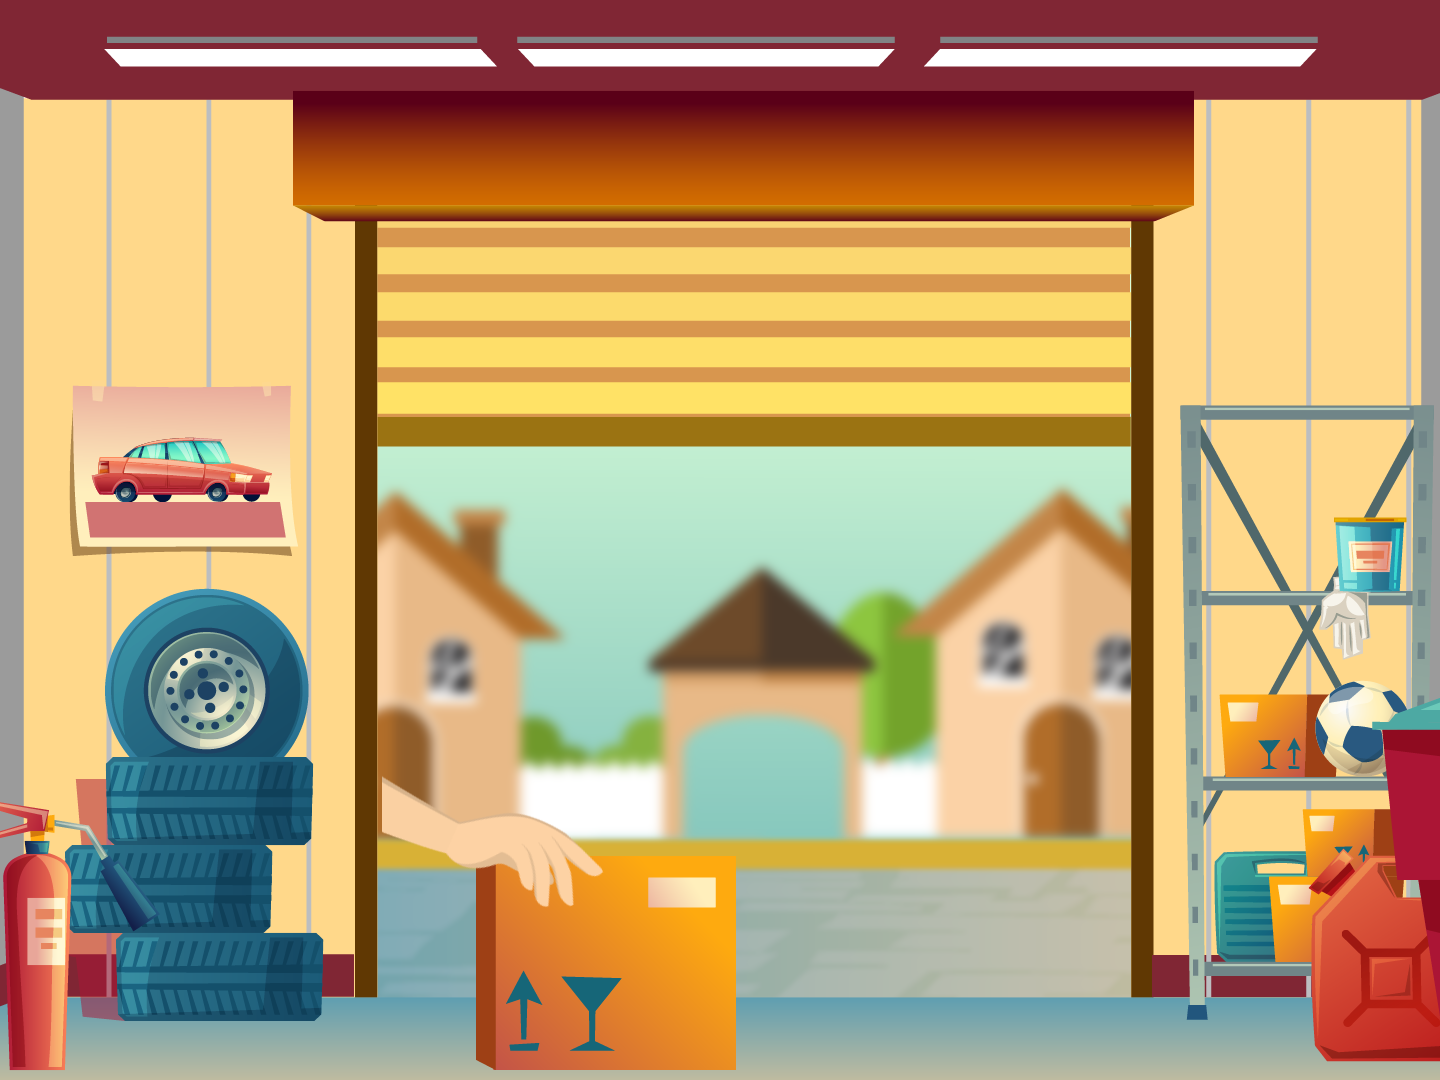 Garage Scene flat vector animation illustration